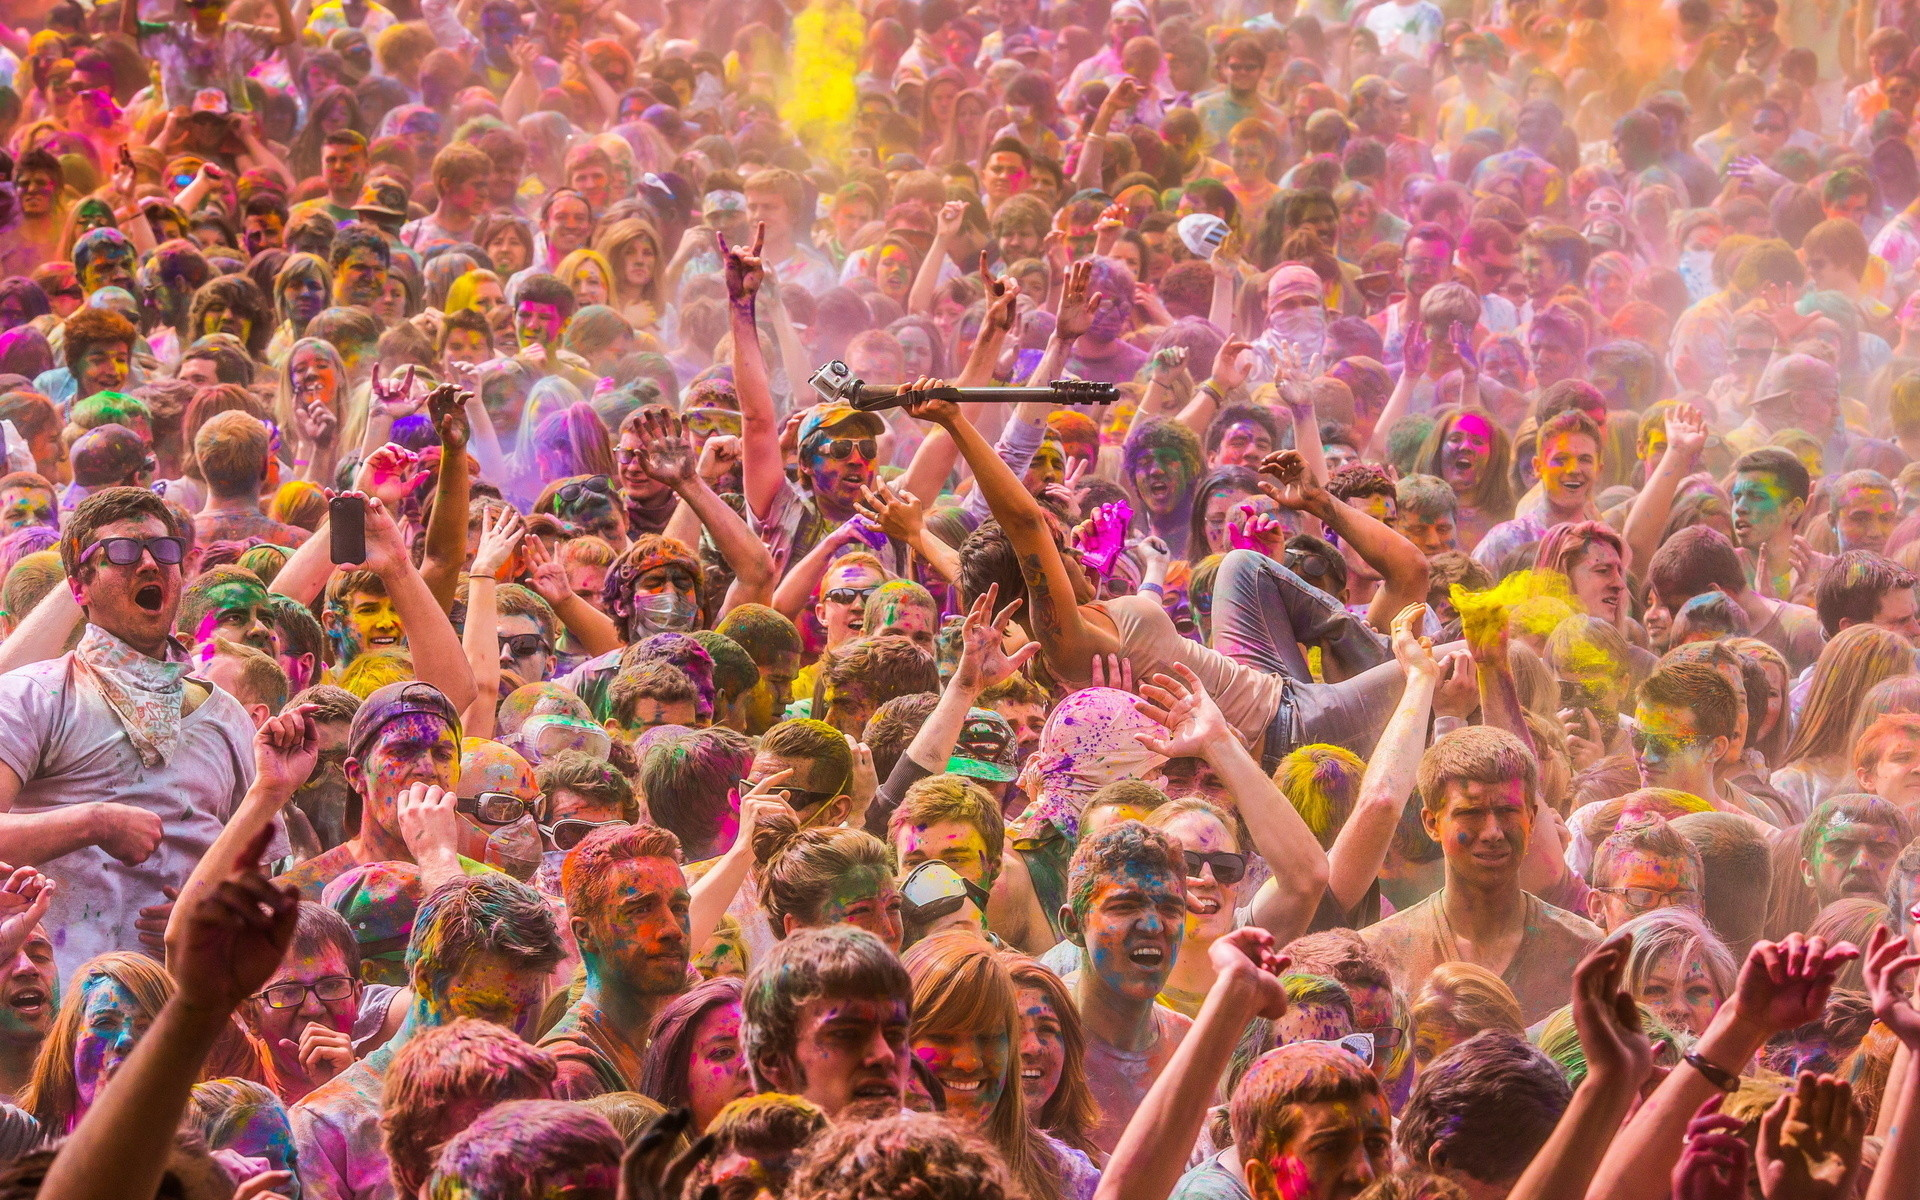 1920x1200 Artistic - Psychedelic Photography Crowd People Wallpaper